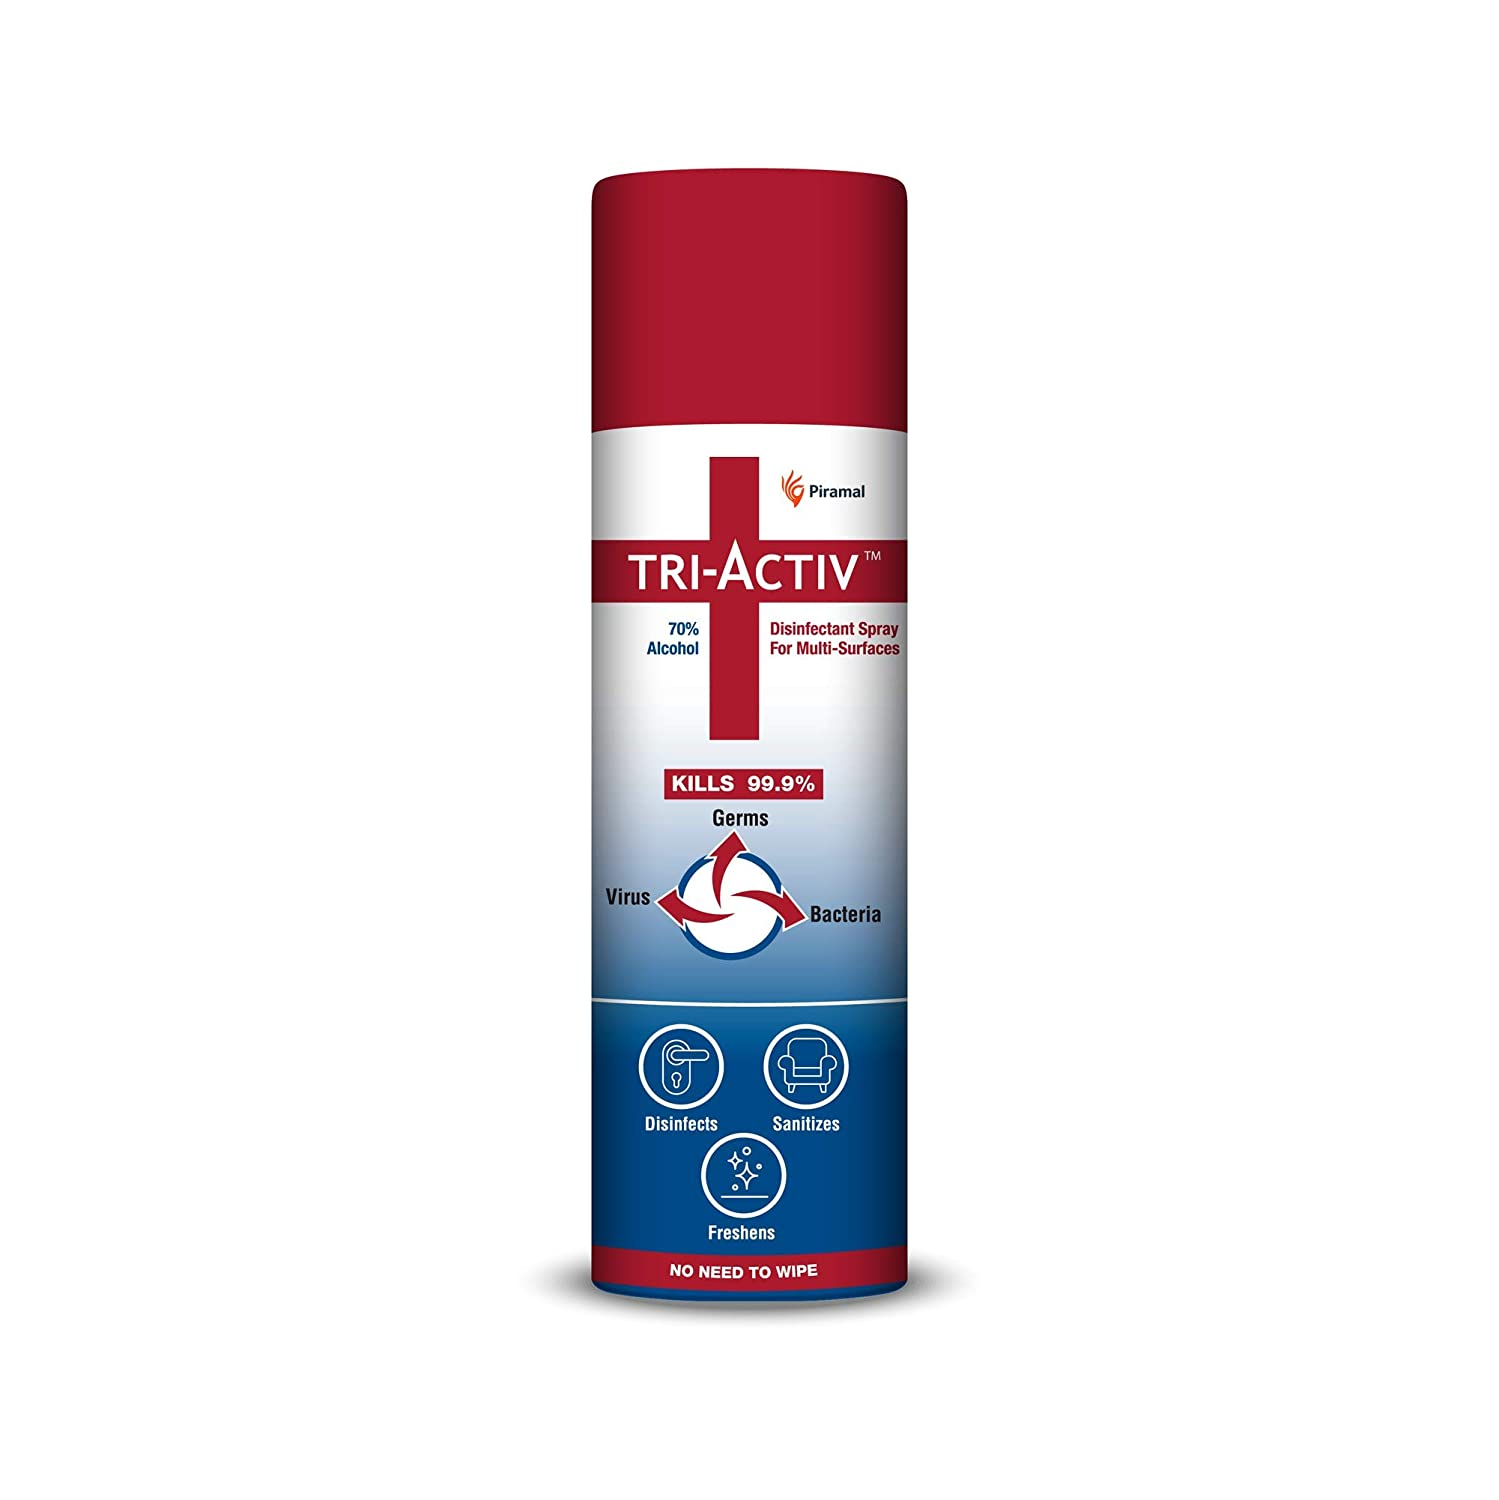 Tri-Activ 70% Alcohol Based Disinfectant Spray for Multi-Surfaces - 230 ml